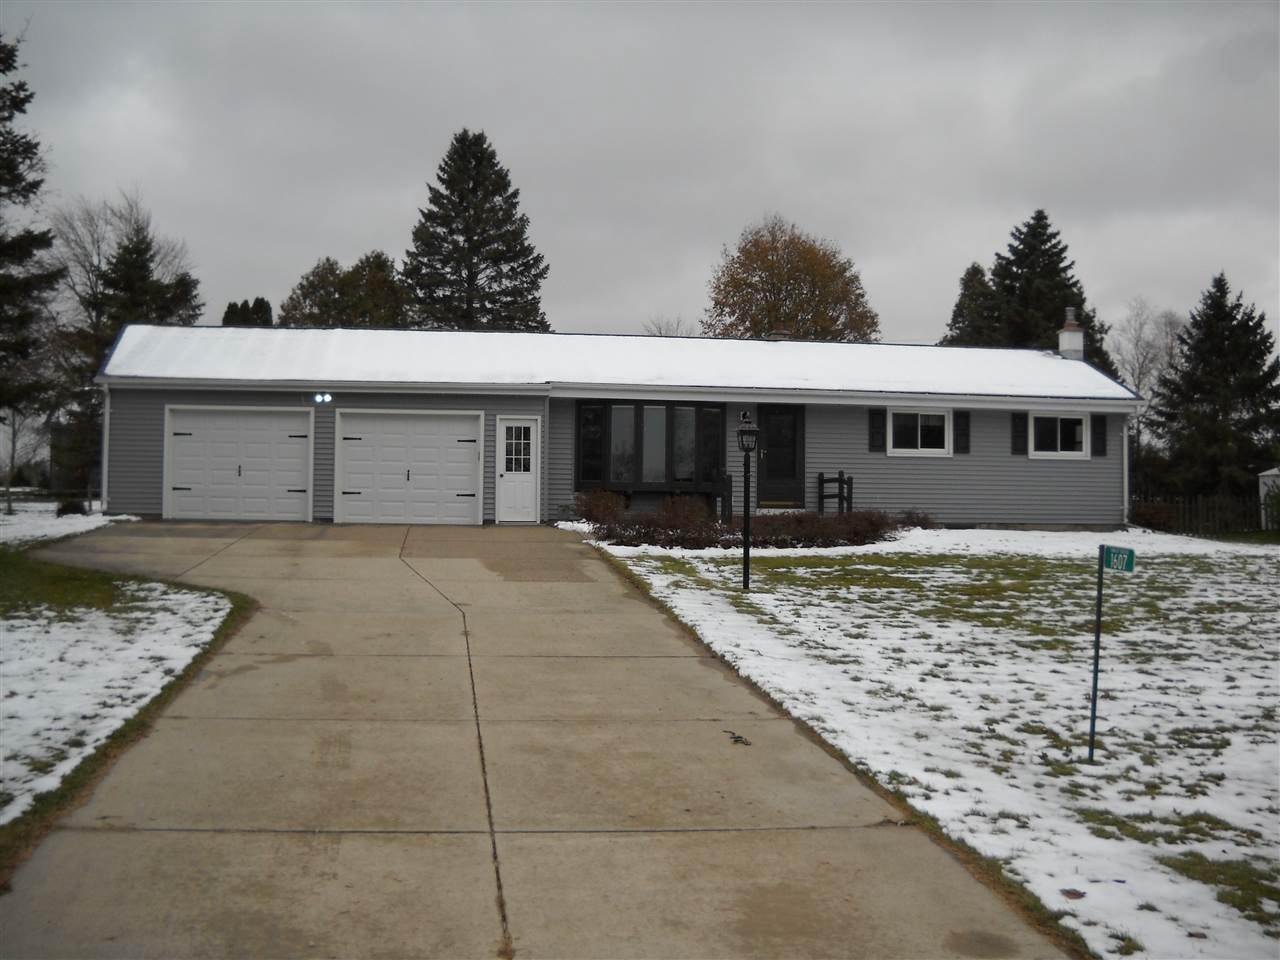 Country Ranch at it finest. This Home features 3 bedrooms, 1.5 baths, a spacious living room, and a finished lower level with a bar and fireplace. The exterior includes a newer roof, siding as well as fresh landscaping. Grill out on the patio overlooking the wonderful yard.